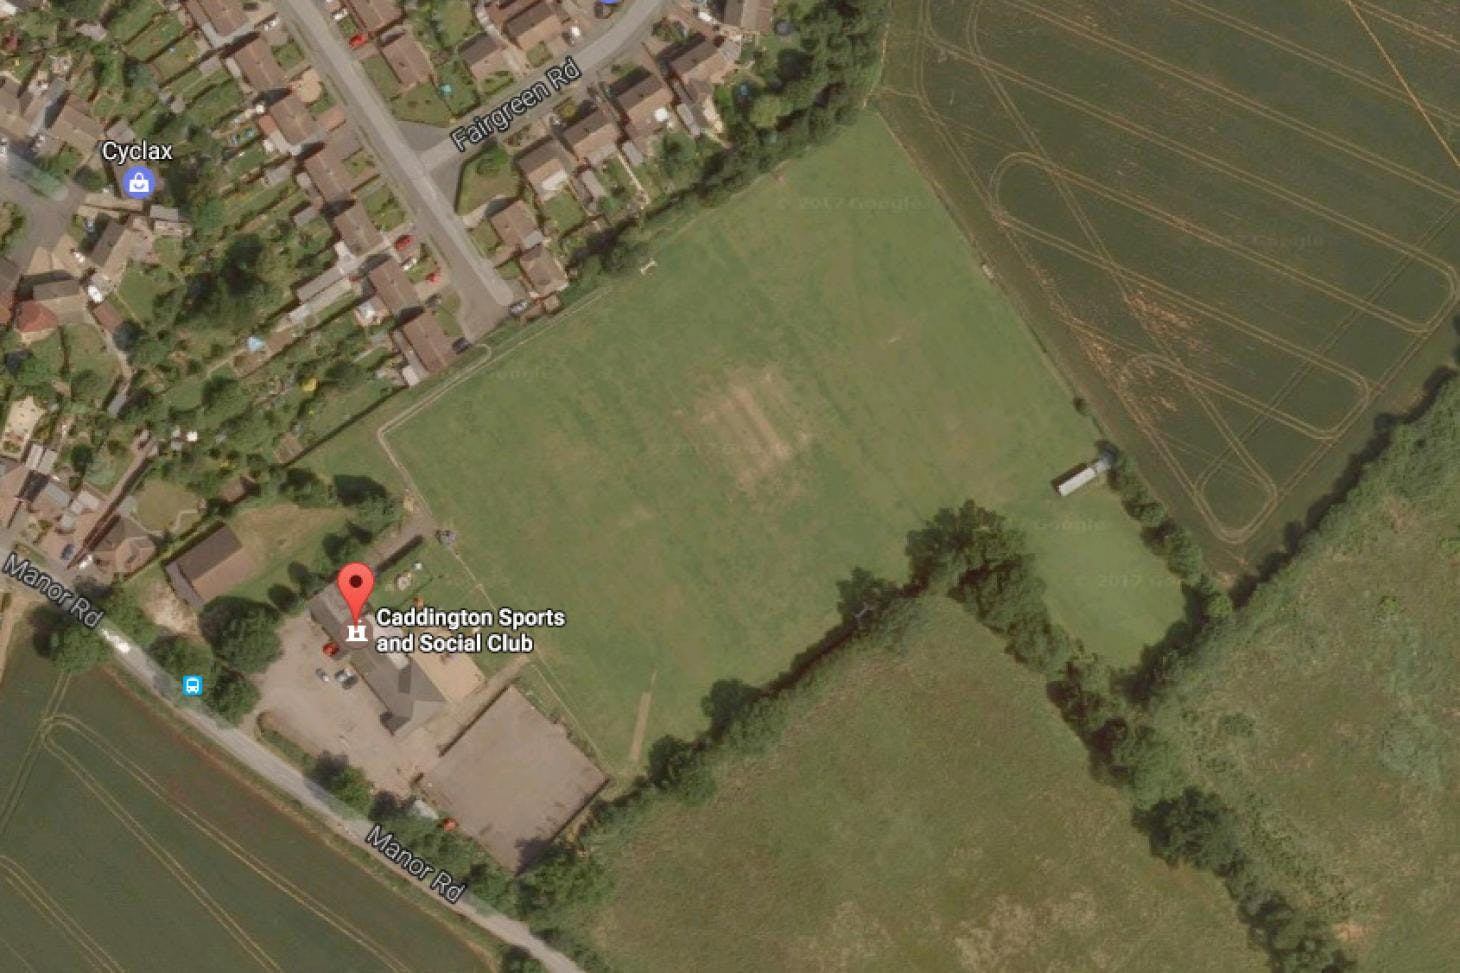 Caddington Sports and Social Club 11 a side | Grass football pitch